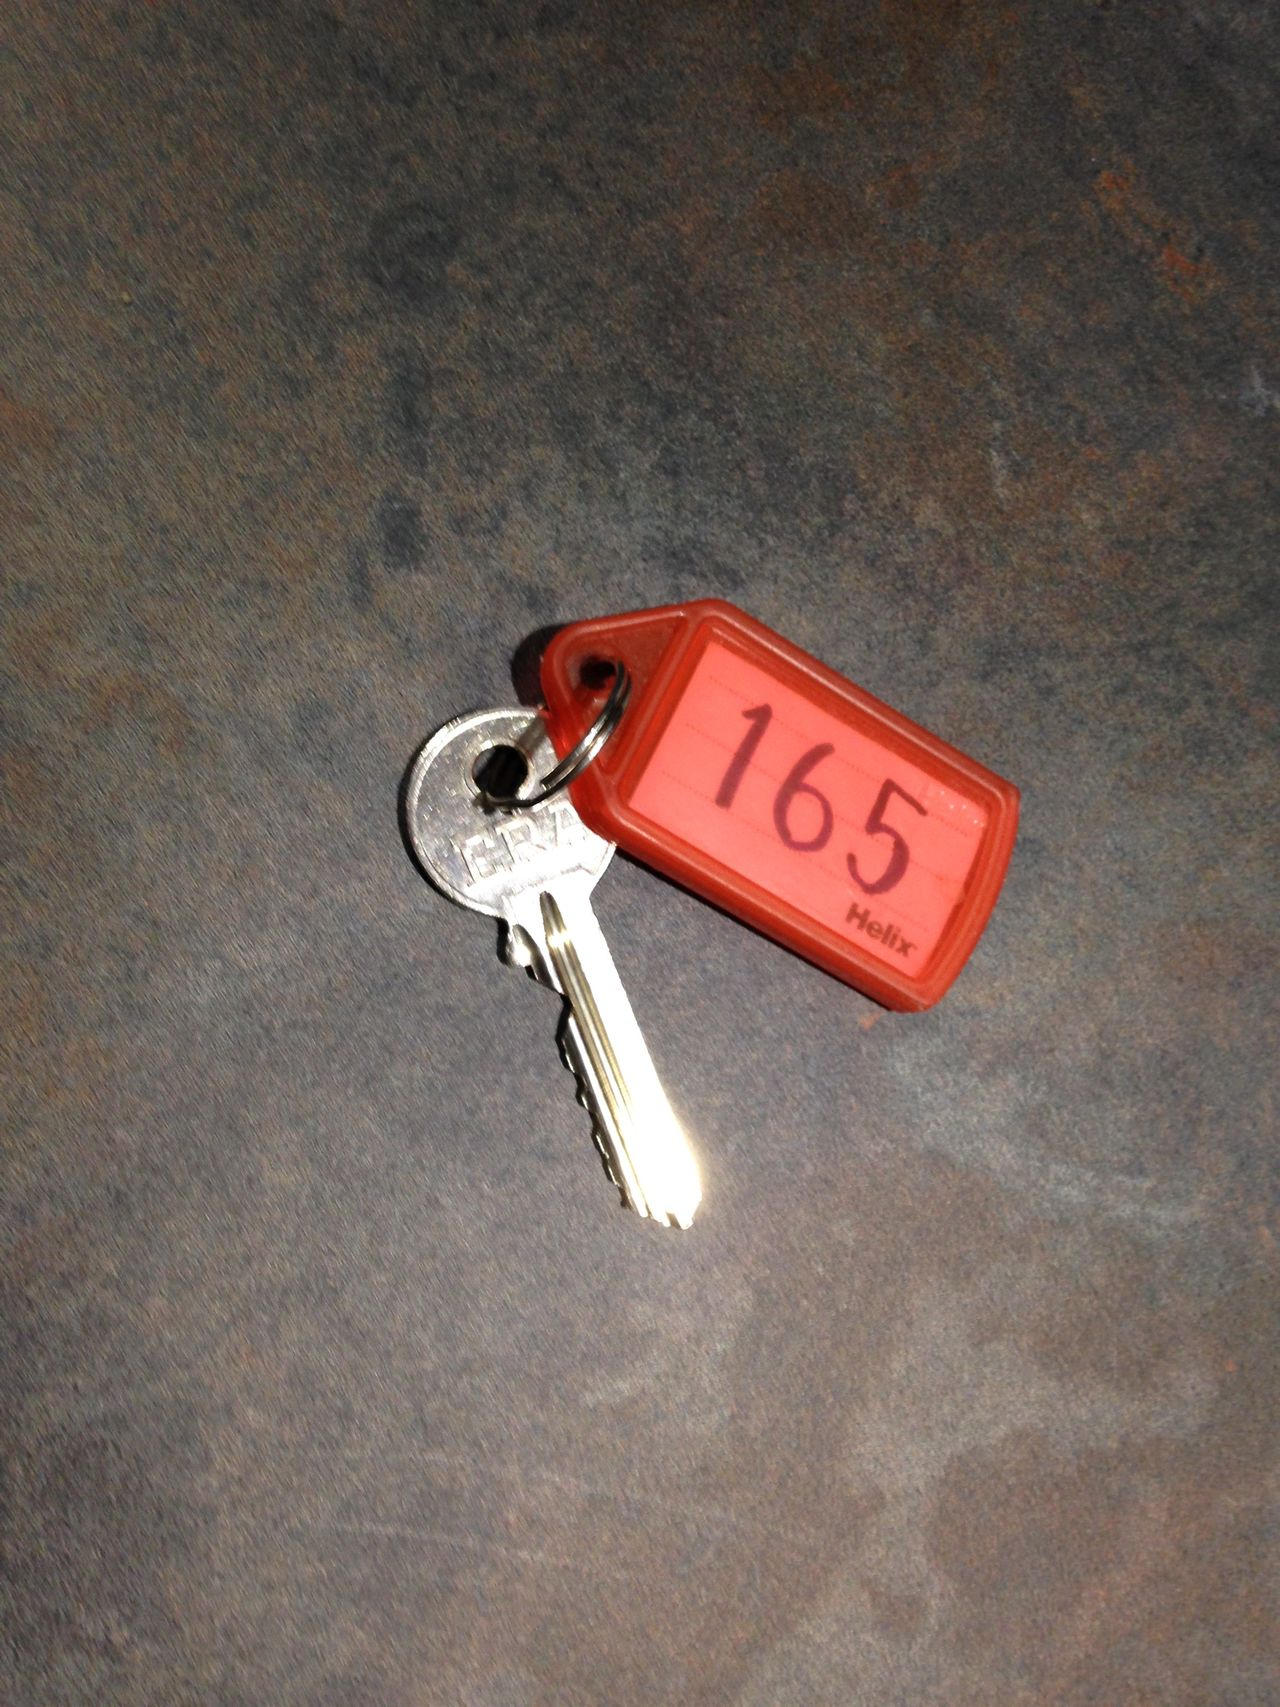 165 Close-up Home Indoors  Keys Landlord Moving New Home Occupancy Single Object Tennant